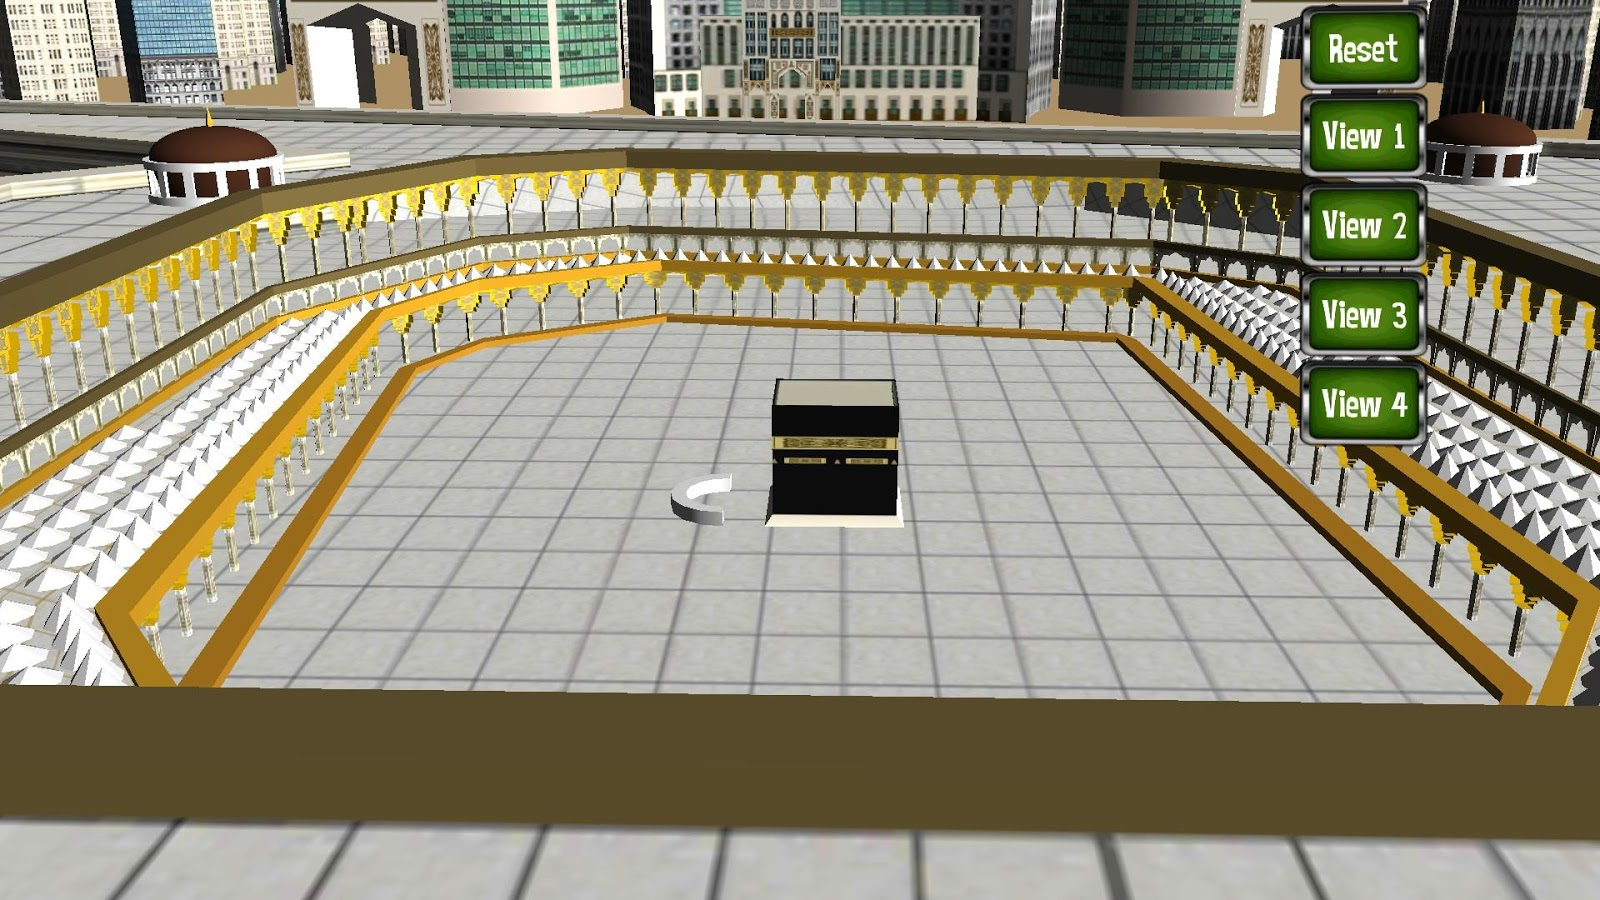 Mecca 3D (Makkah Virtual Tour) - screenshot